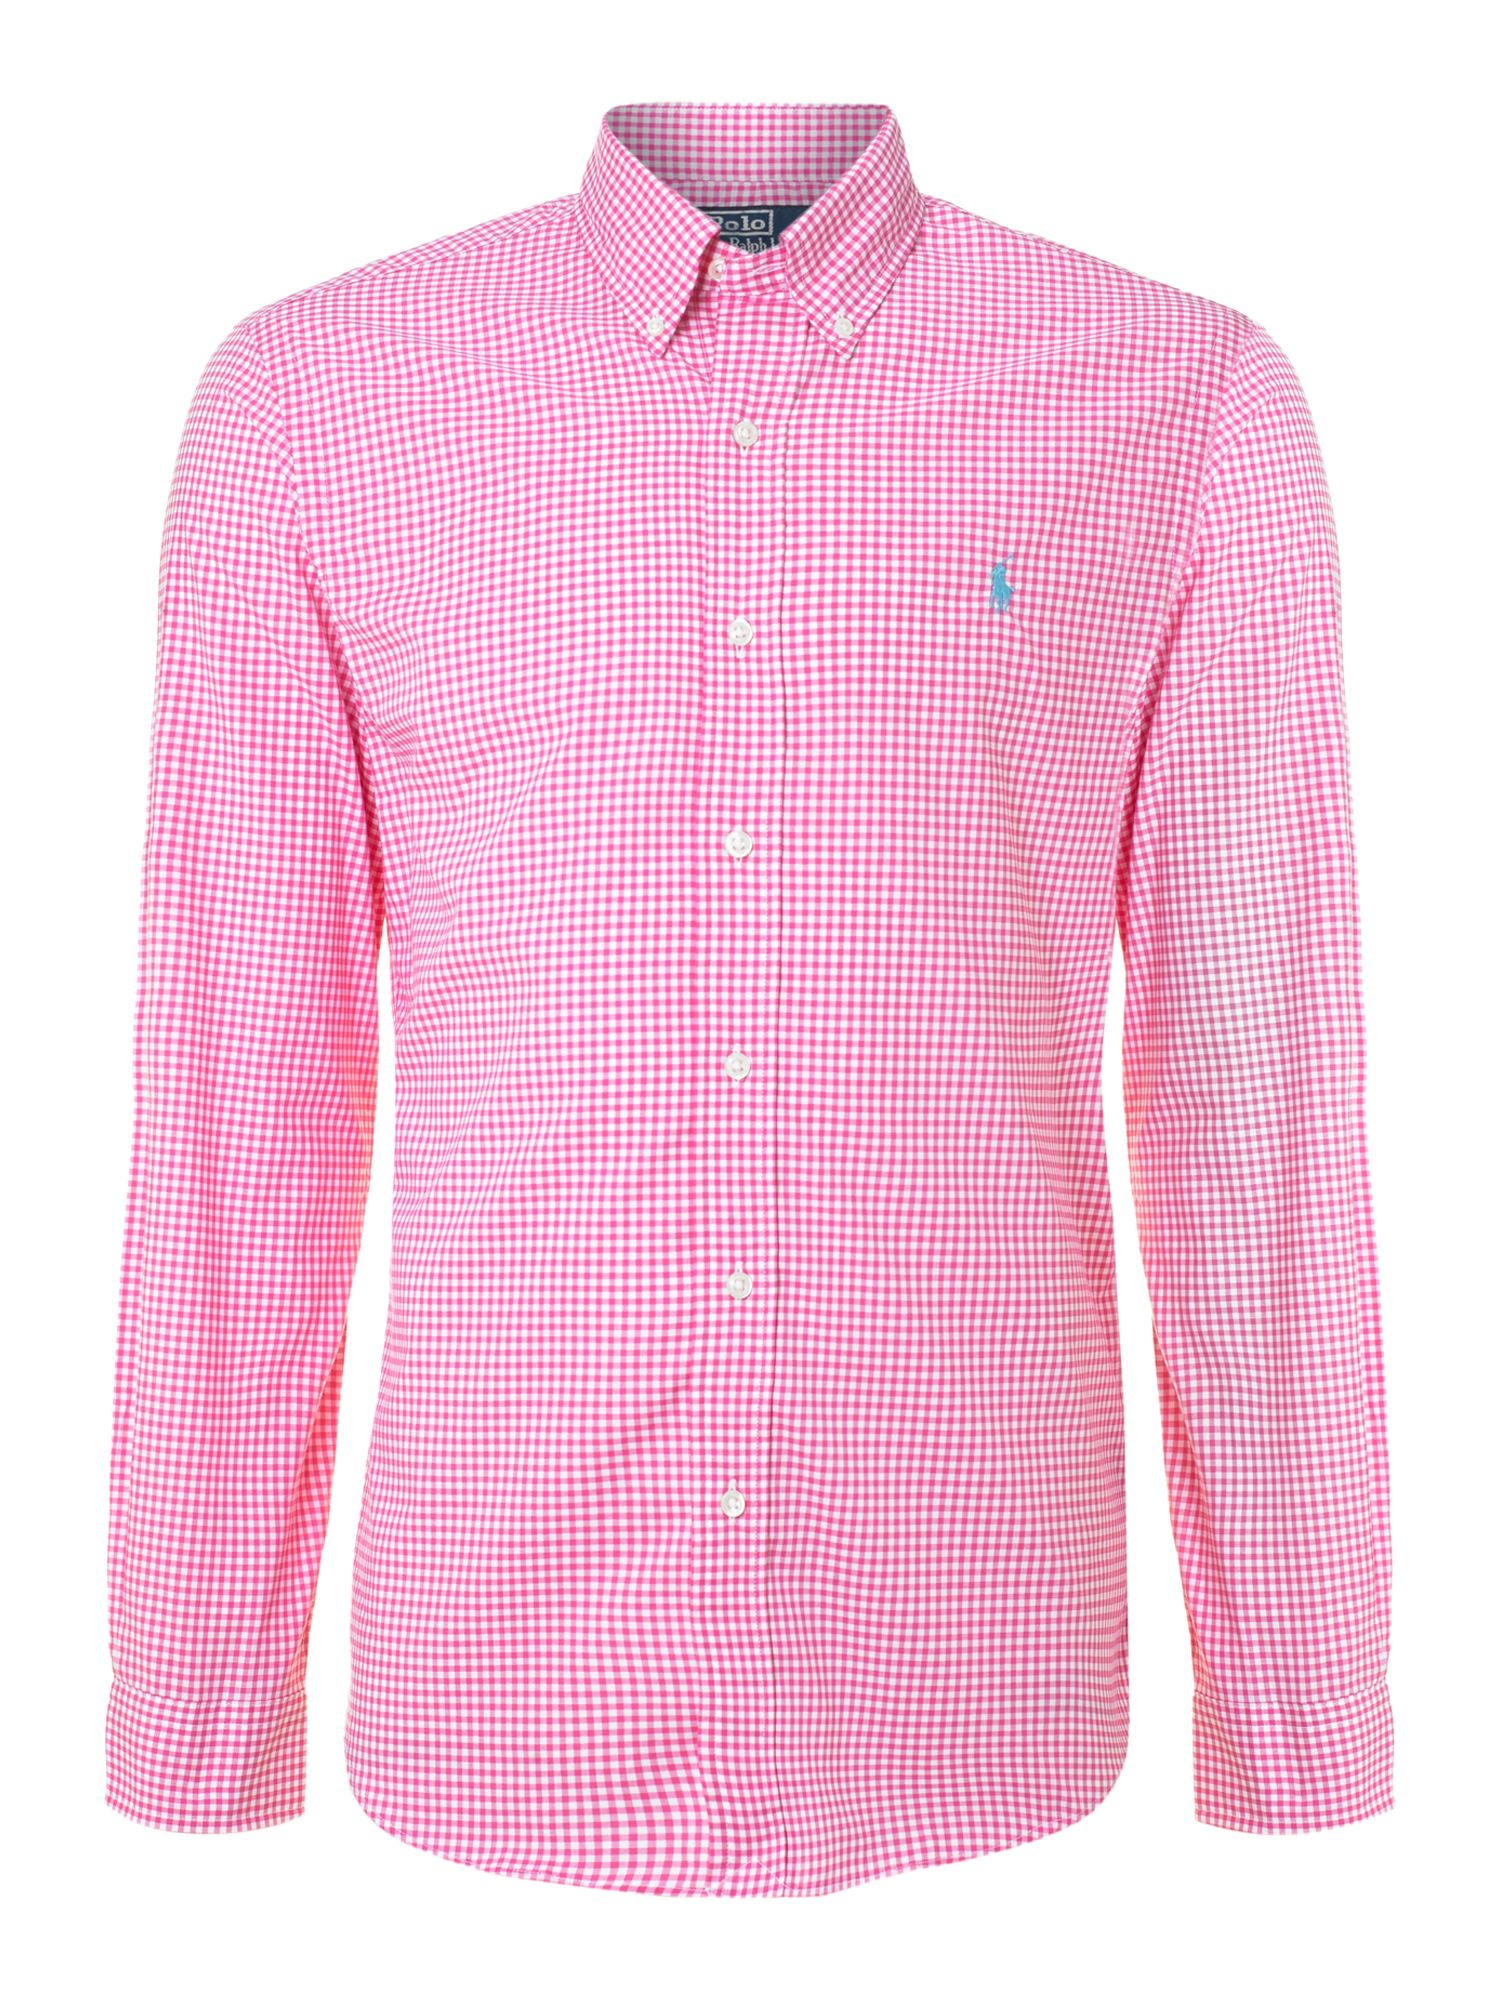 Polo ralph lauren Slim Fit Gingham Check Shirt in Pink for Men | Lyst